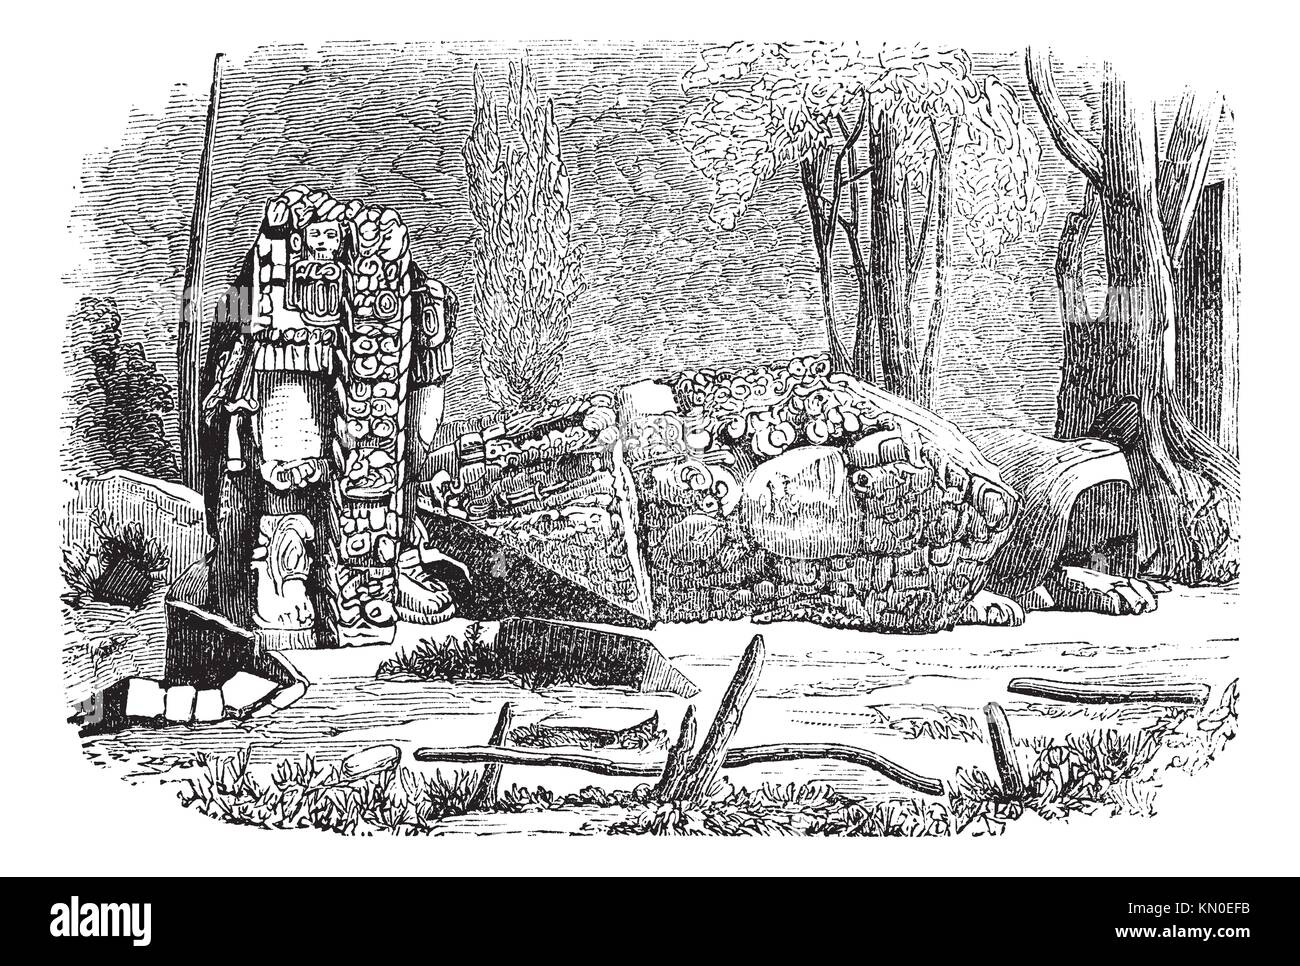 Copan in Honduras, during the 1890s,vintage engraving  Old engraved illustration of Copan showing stelae sculpture - Stock Image